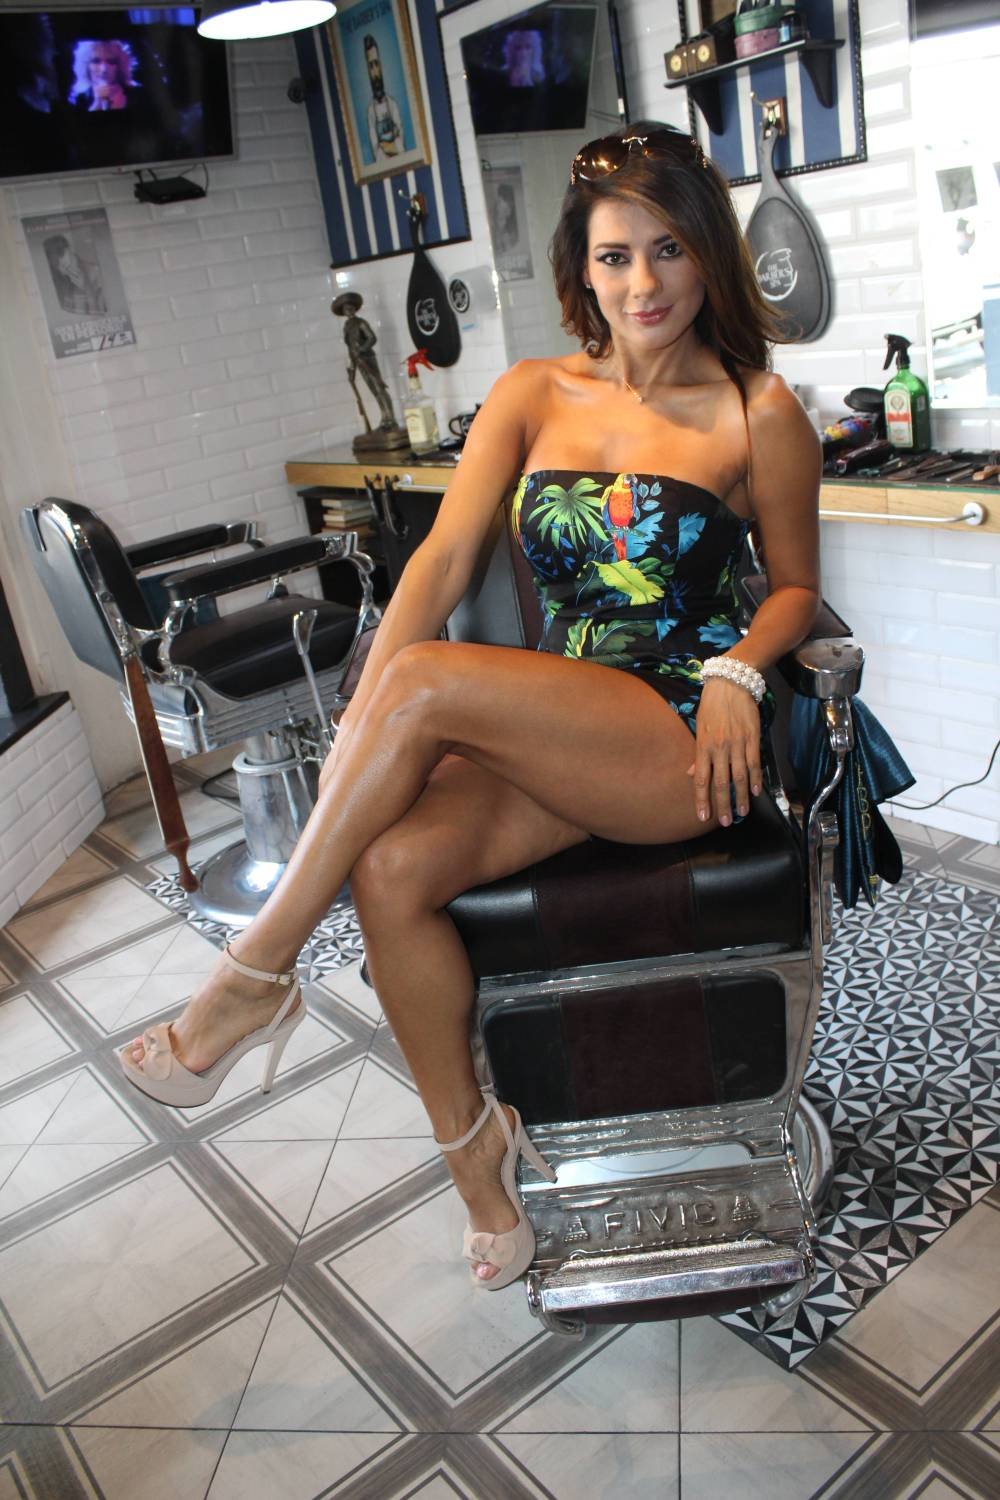 Vivi Castrillon Amazing Hot Legs - Vivi Castrillon Amazing Hot Legs